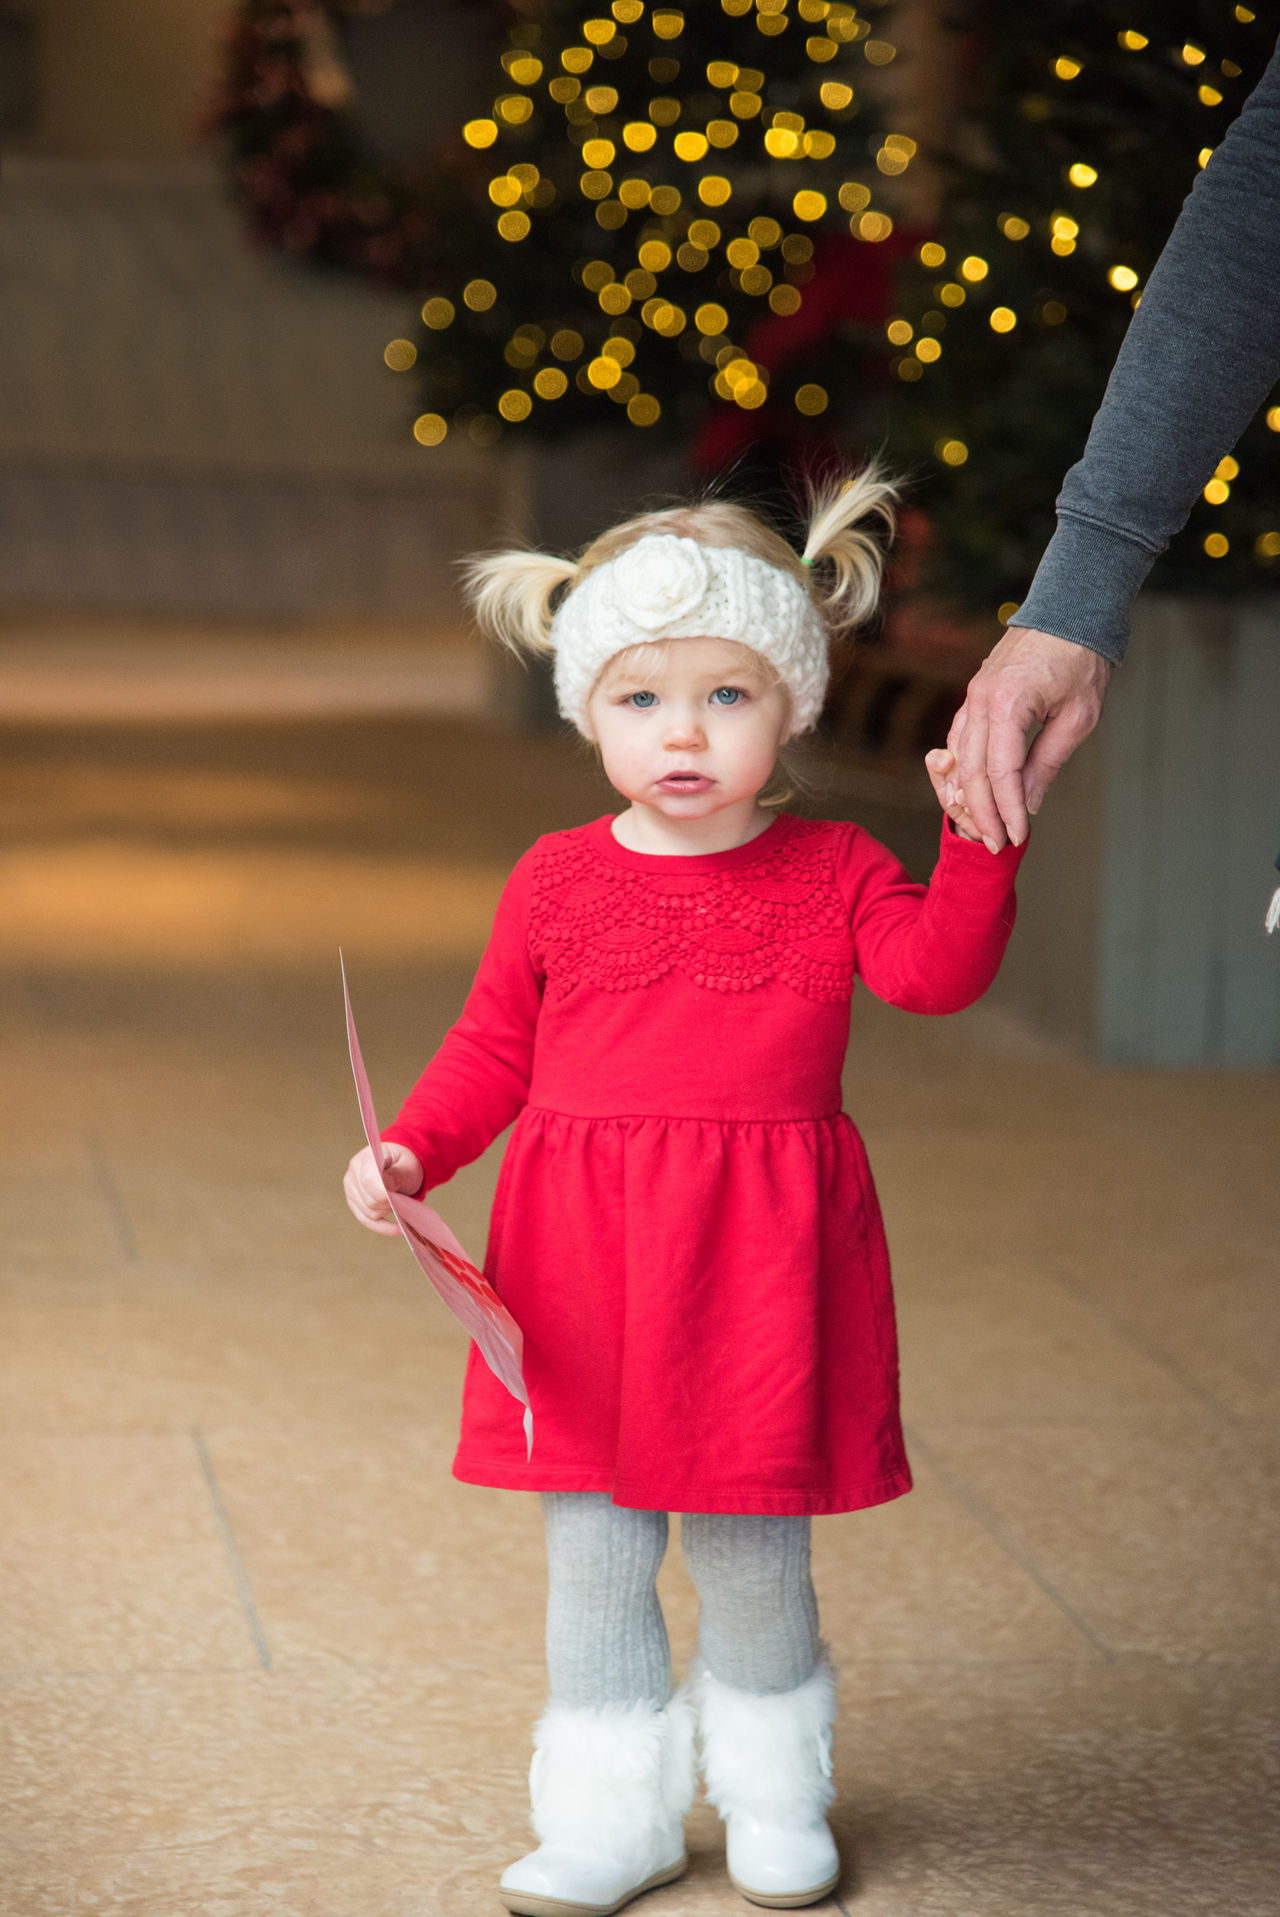 Adorable little girl in red knit dress with headband and pigtails in front of Christmas tree at indoor event with model release Adorable Bokeh Boots Child Childhood Children Christmas Christmas Tree Close-up Full Length Headband Leggings Little Girl One Person People Pig Tails Pony Tail  Red Dress